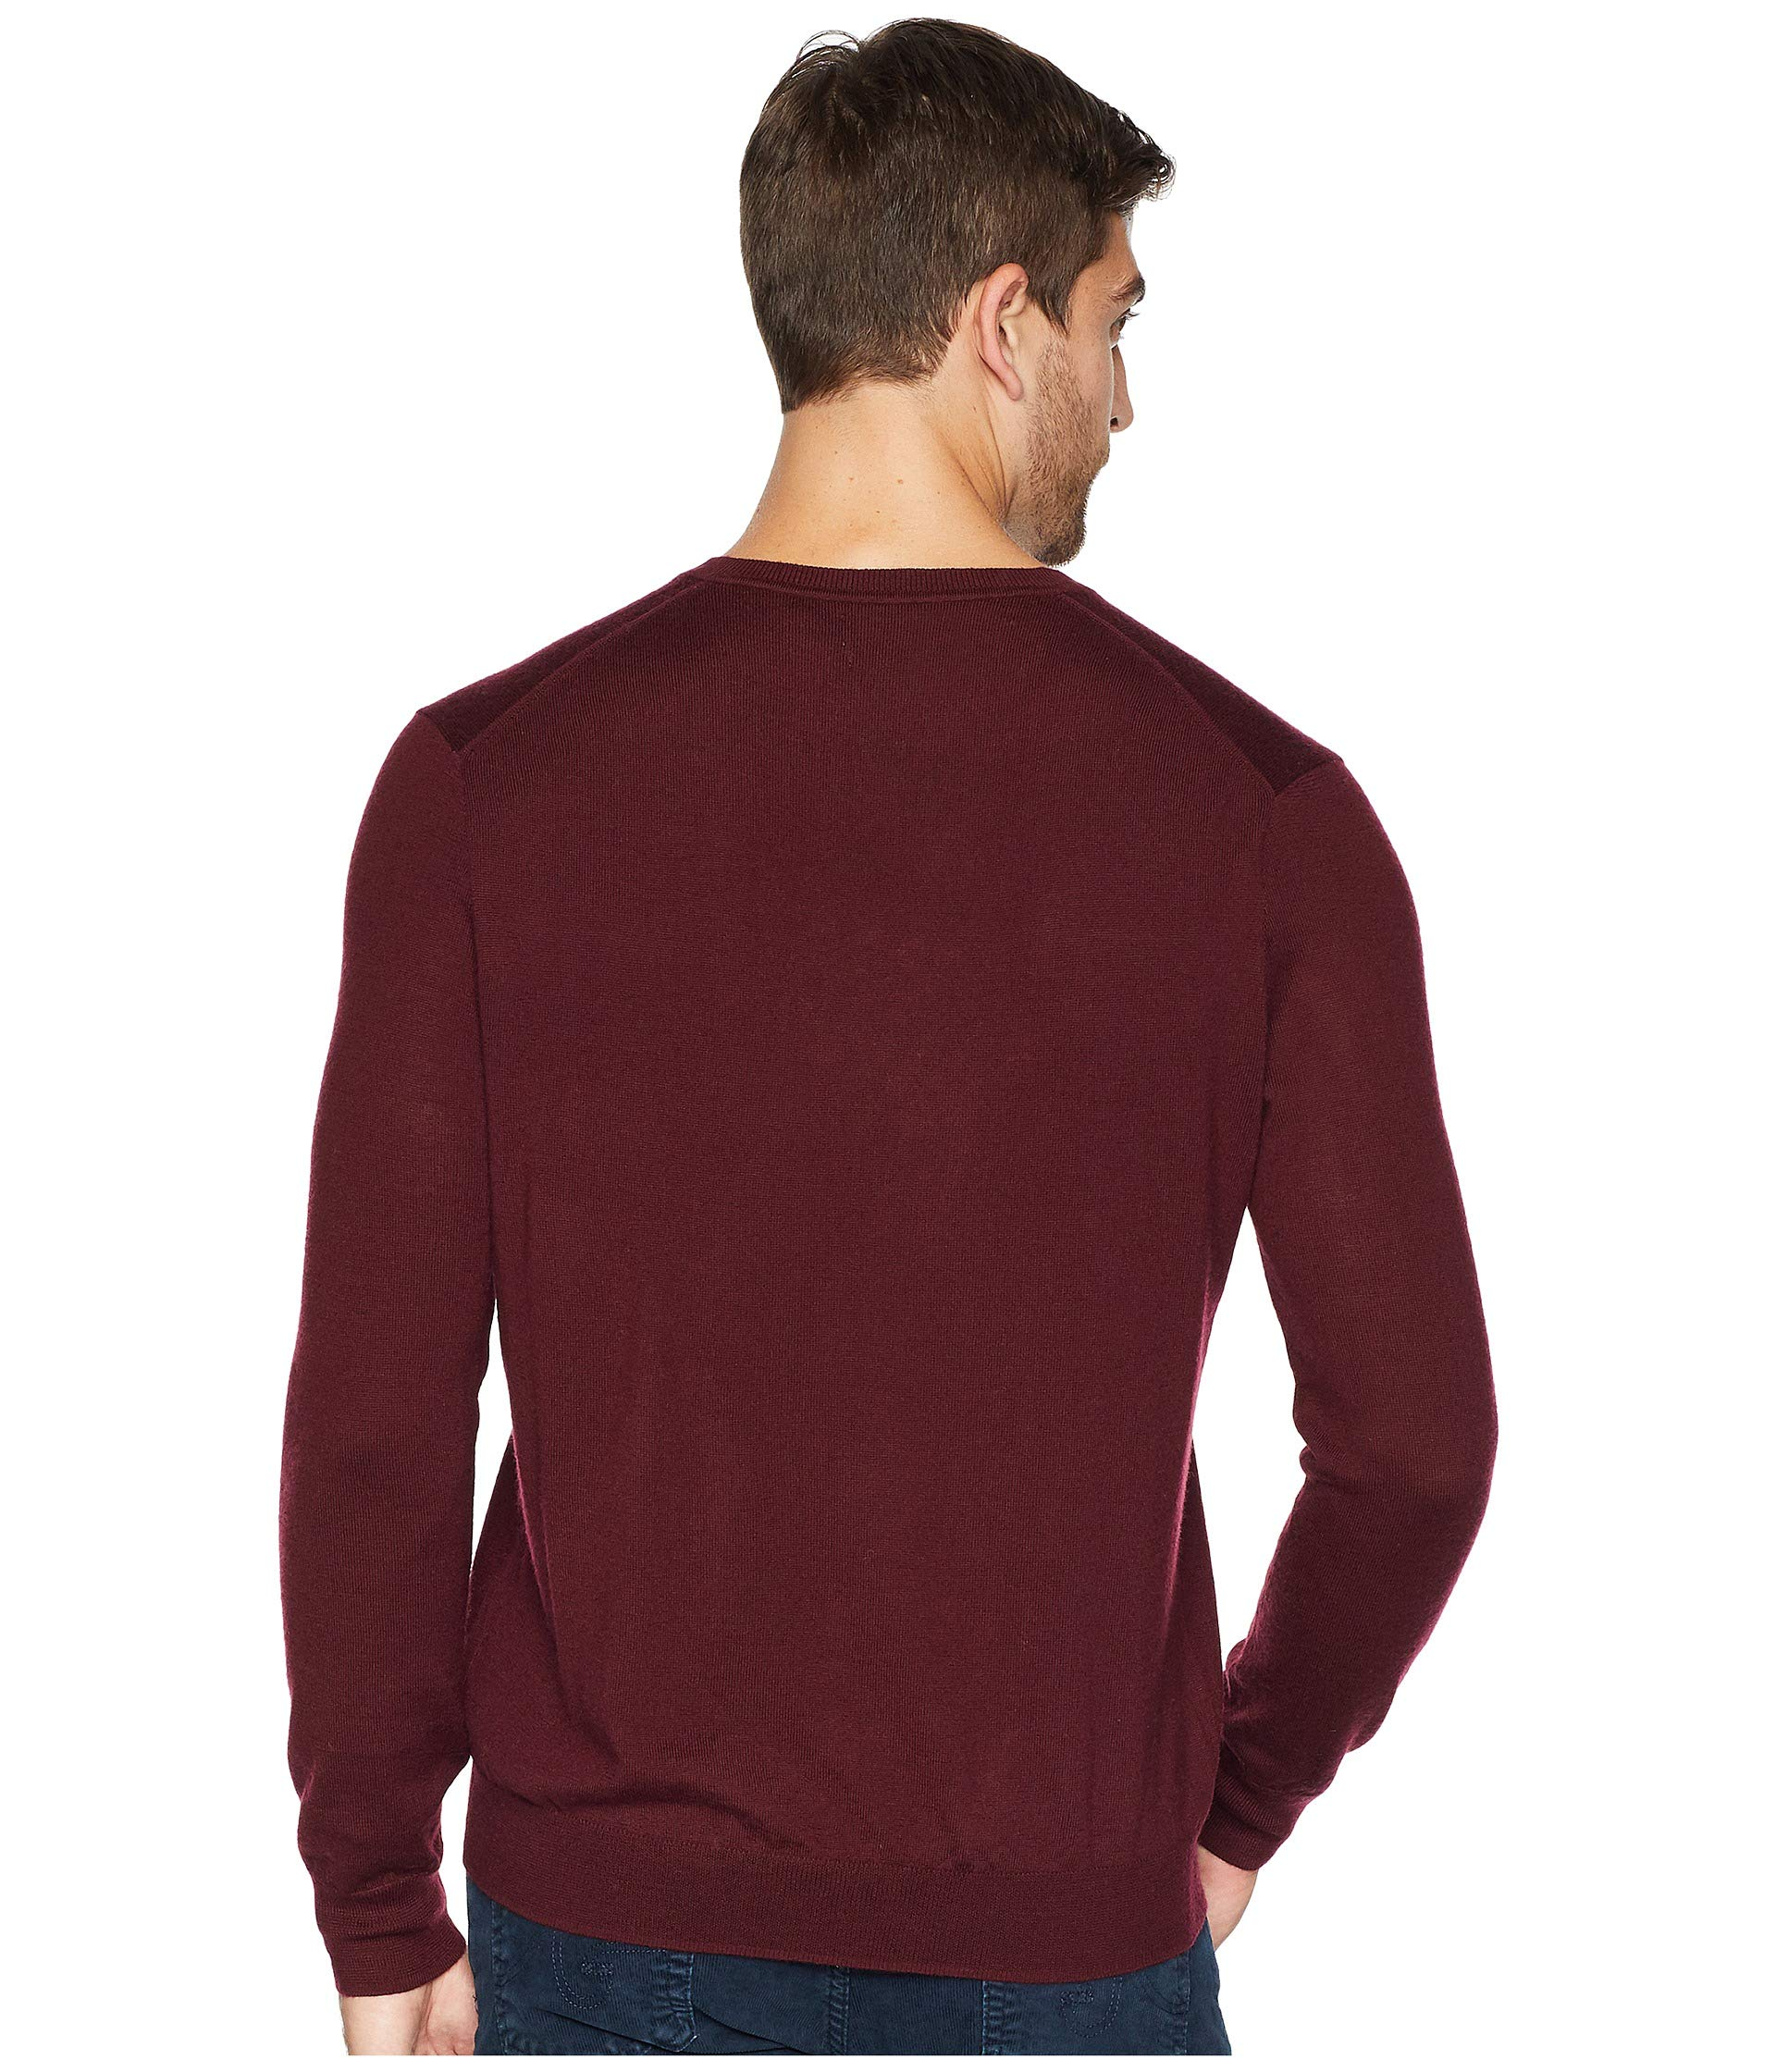 Polo Merino Lauren Wine Washable Ralph Classic Sweater V neck rwHgr6qC